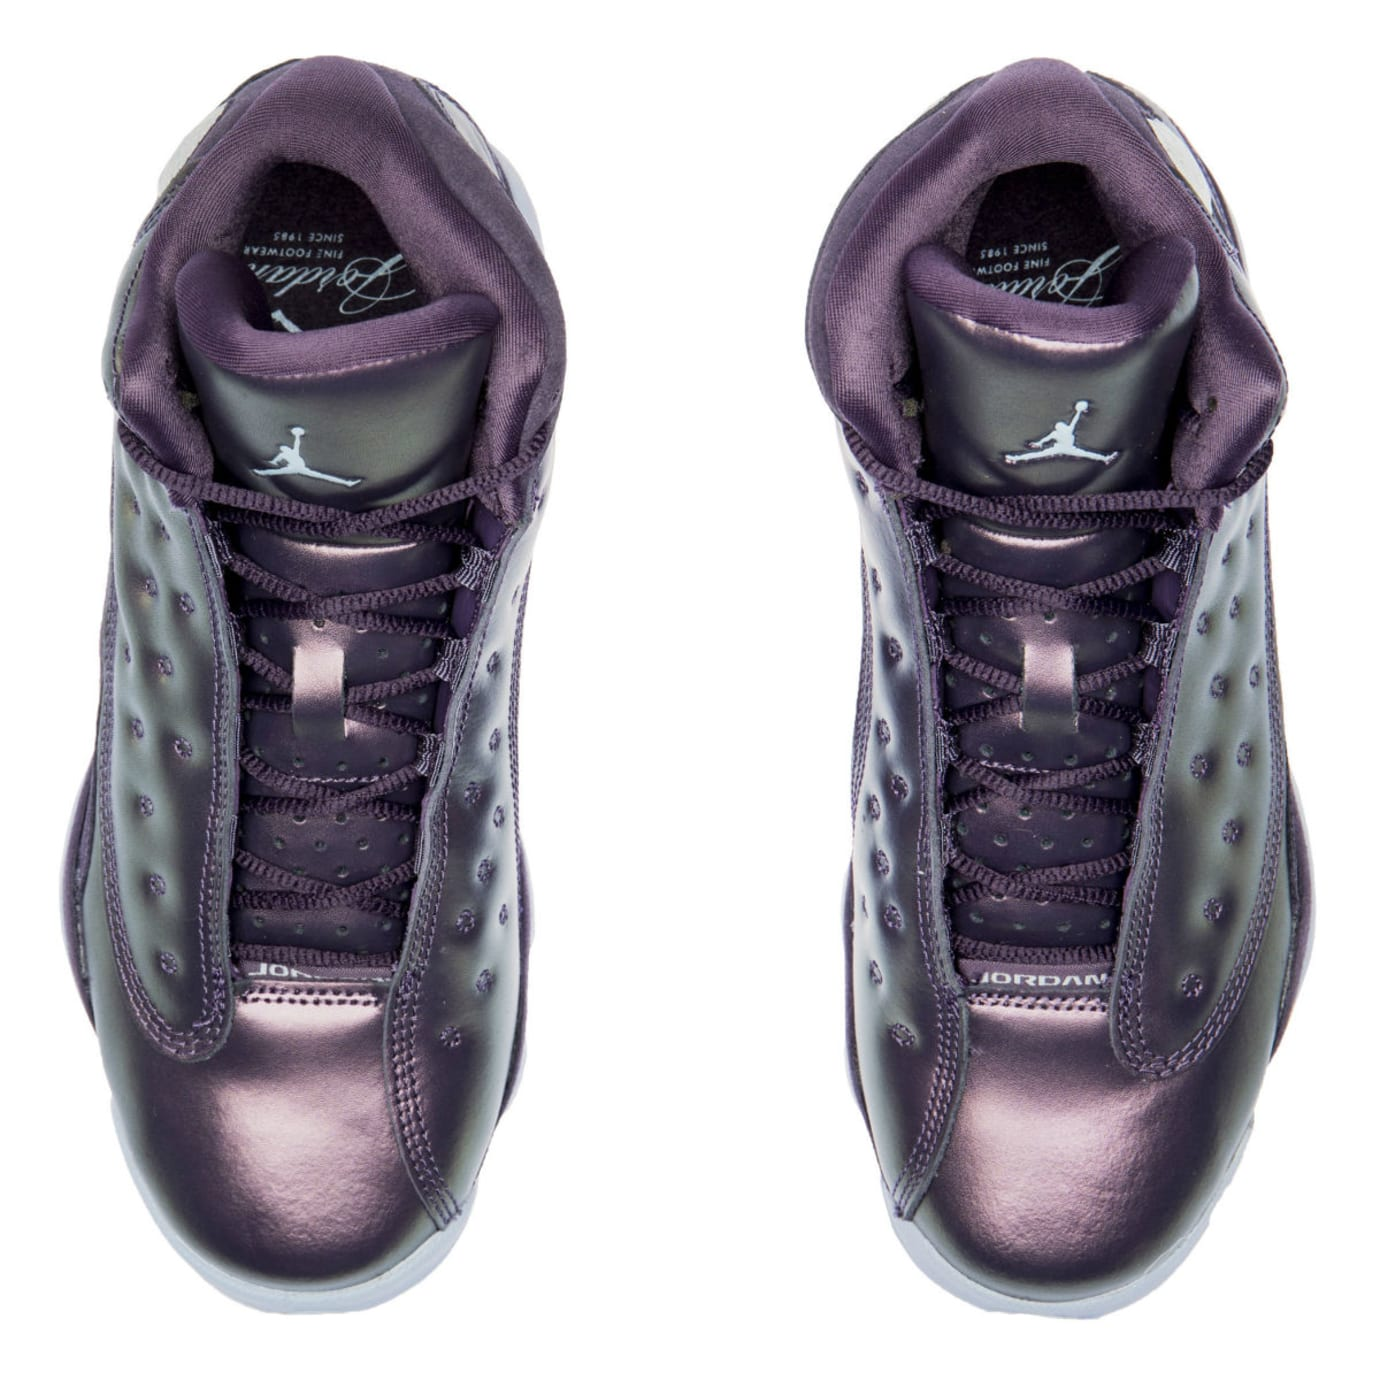 Air Jordan 13 XIII HC Dark Raisin Release Date AA1236-520 Top